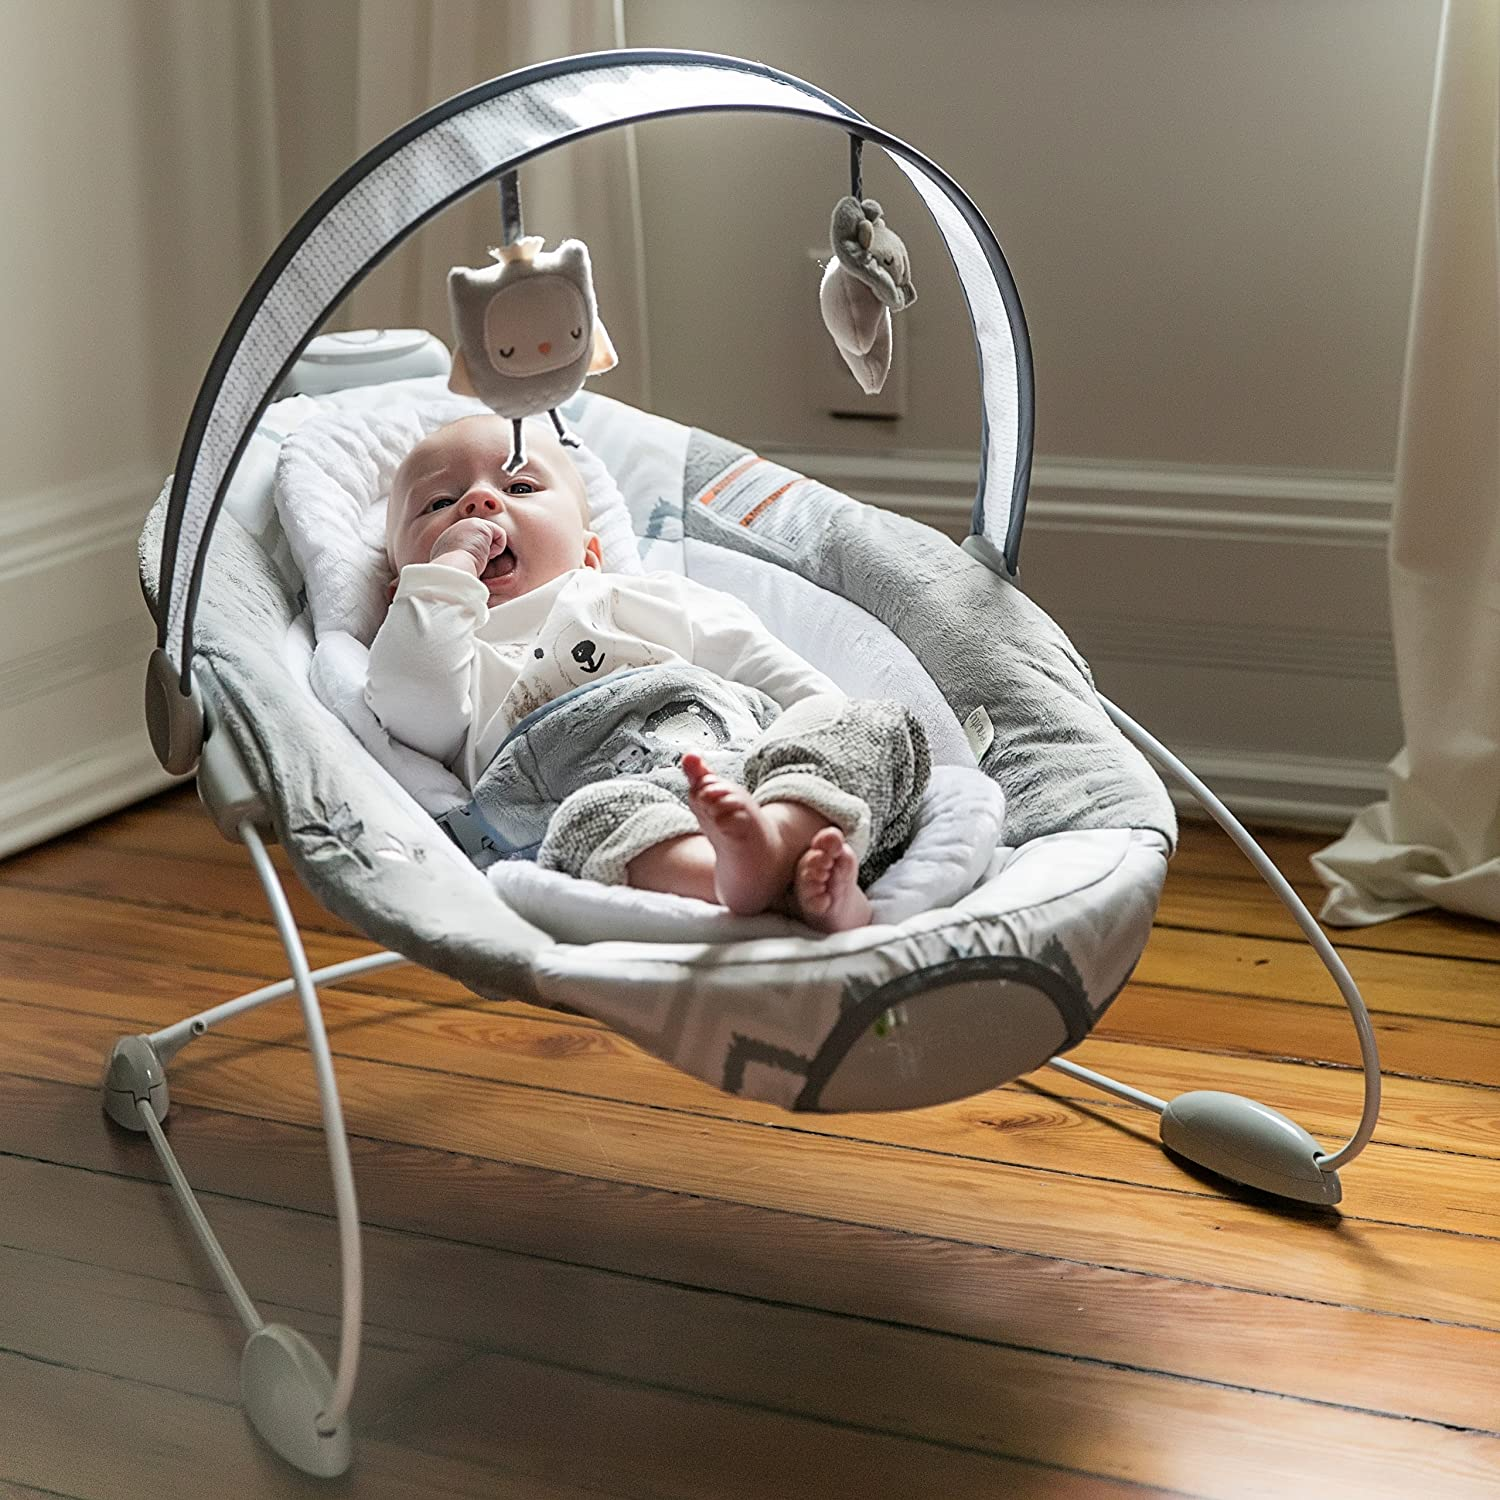 consumer reports baby bouncers